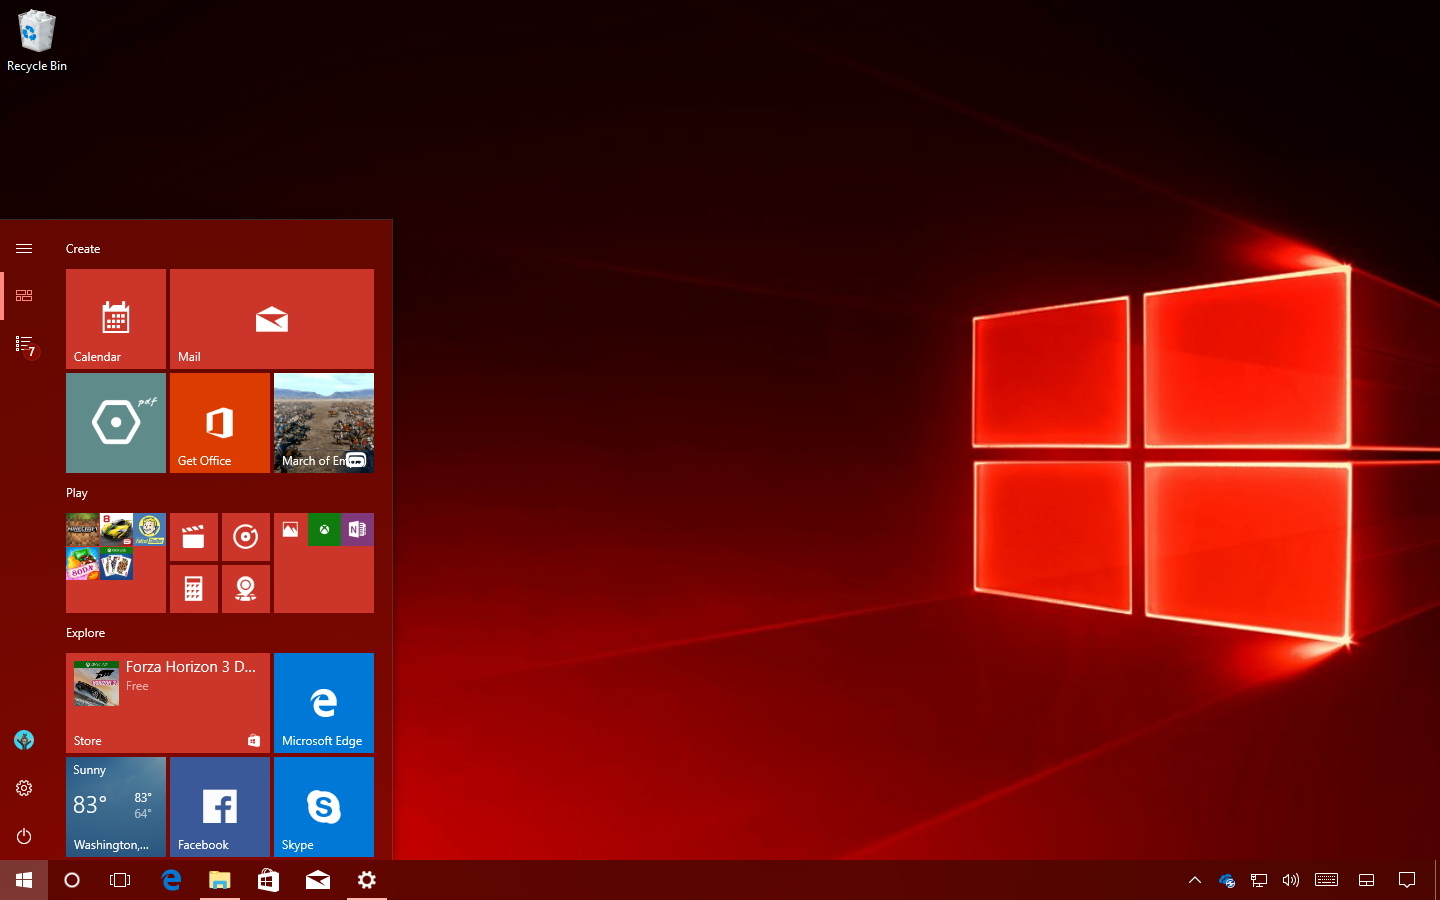 Windows 10 Redstone 3 update